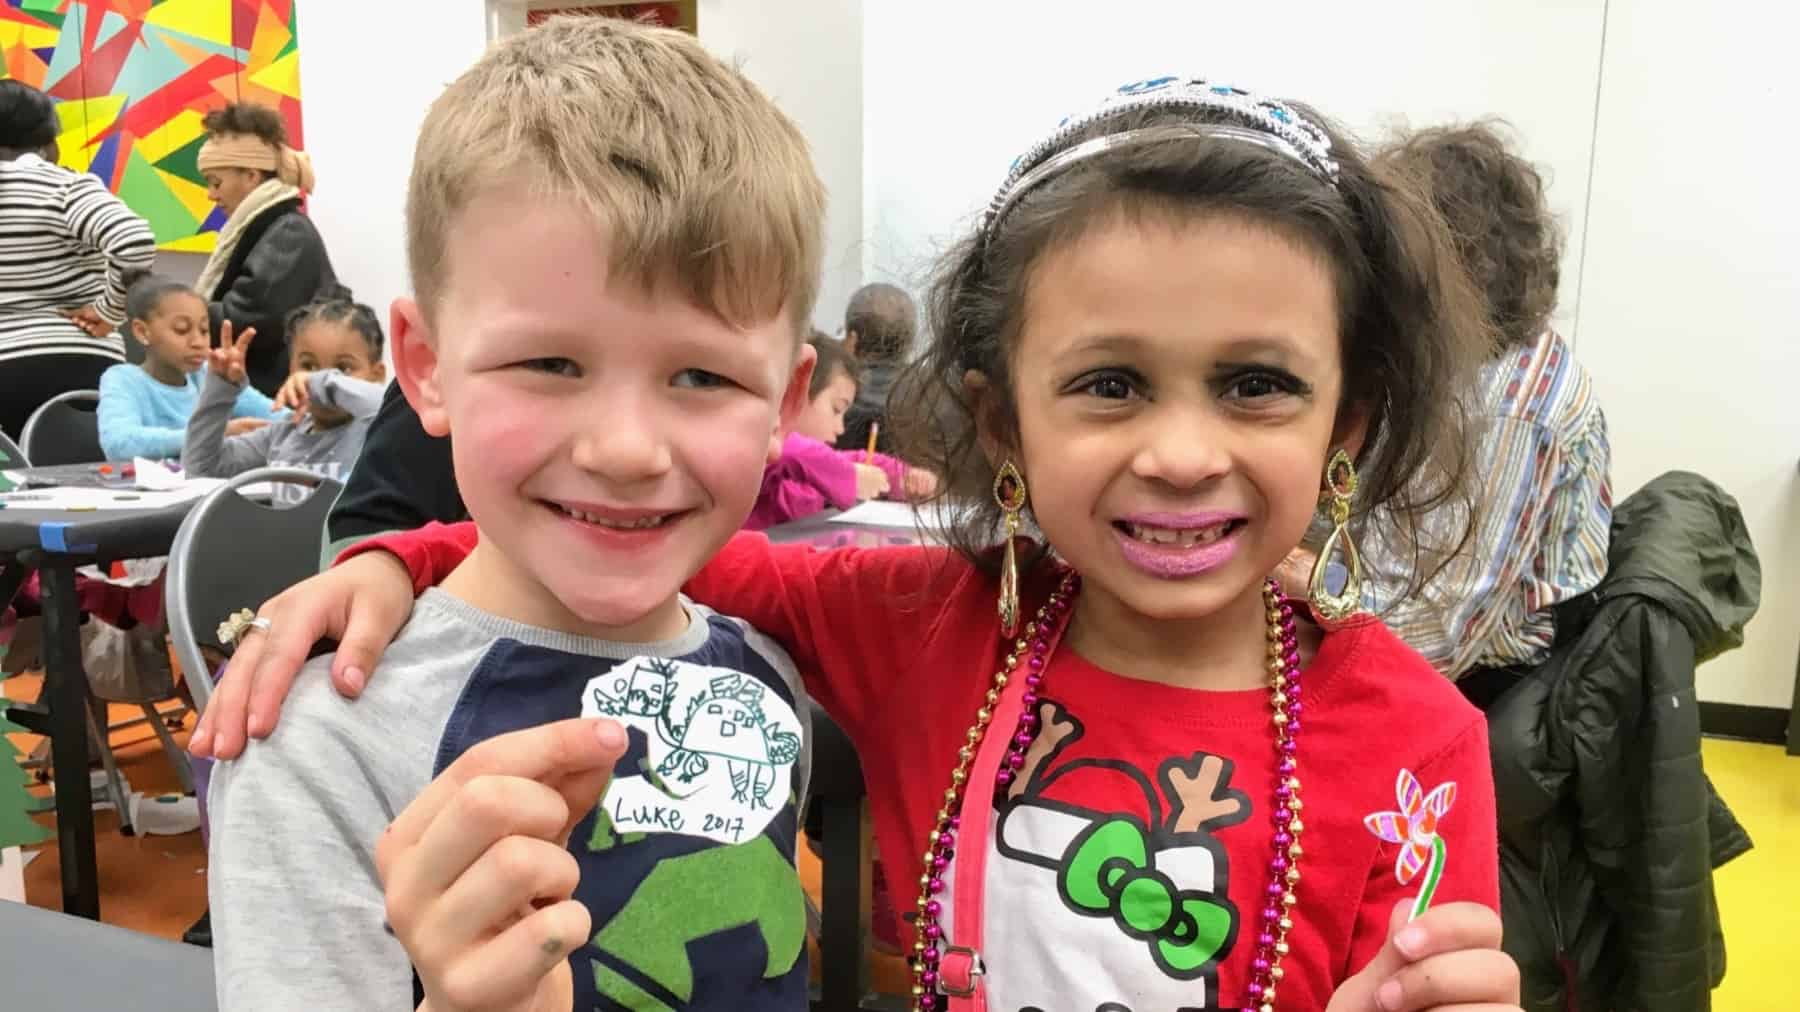 Shrinky Dinks at Brentwood Arts Exchange